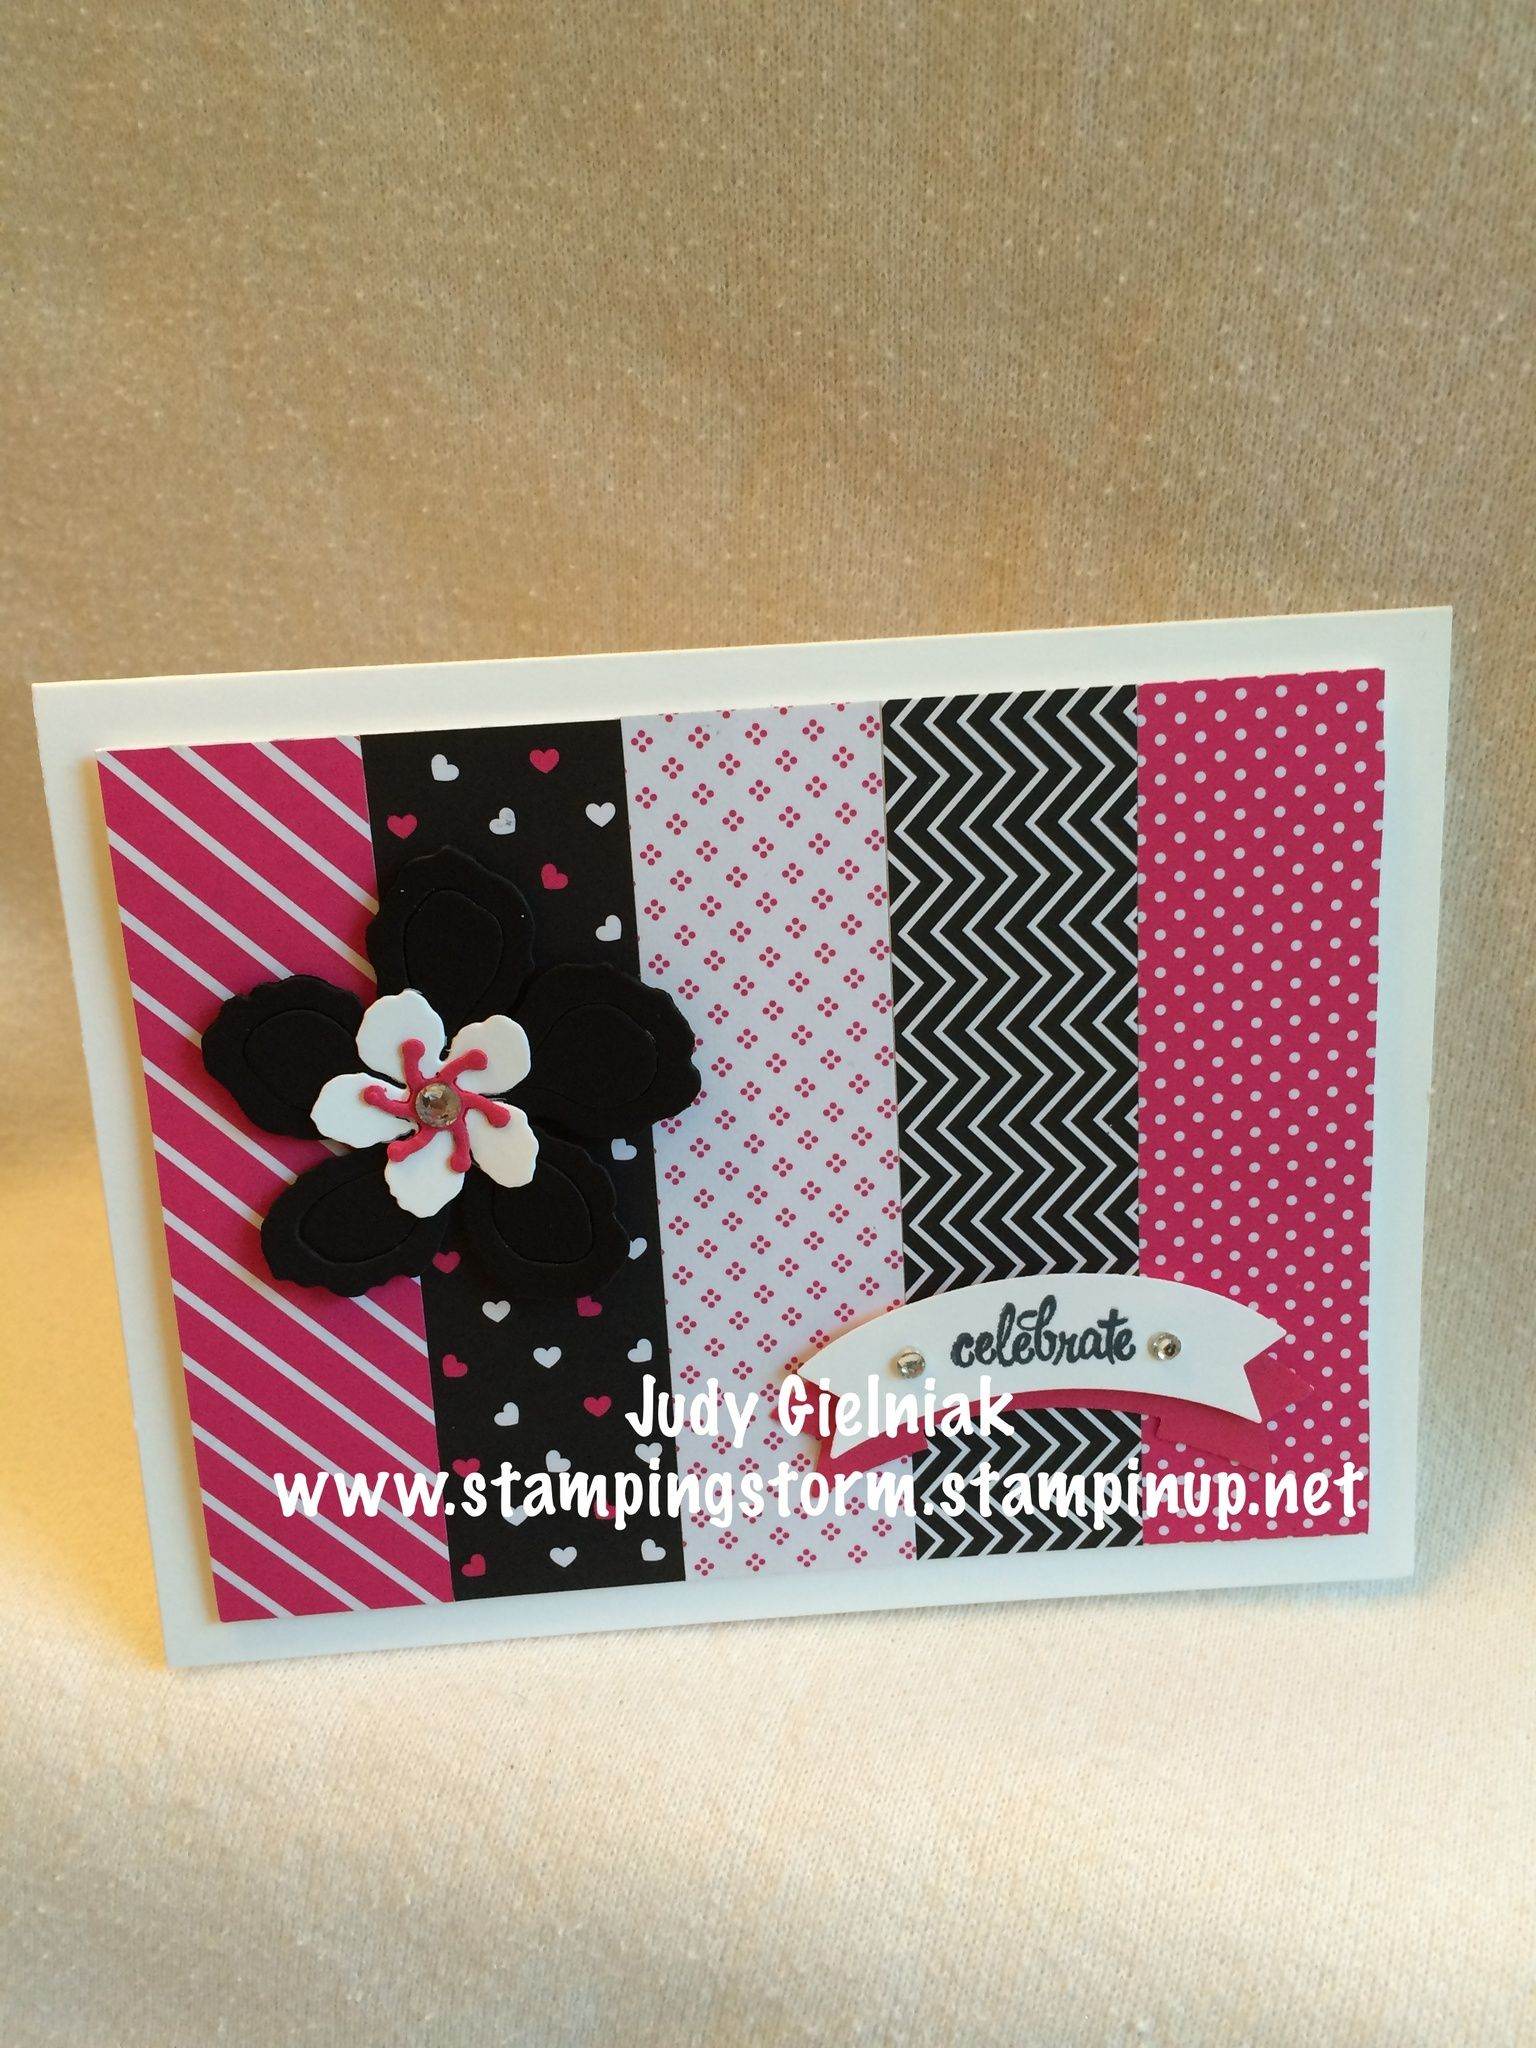 Pop of pink dsp botanical flowers duet banner puch wmatching order stampin up product online from me anytime and see my projects and events independent demonstrator and creative kristyandbryce Gallery